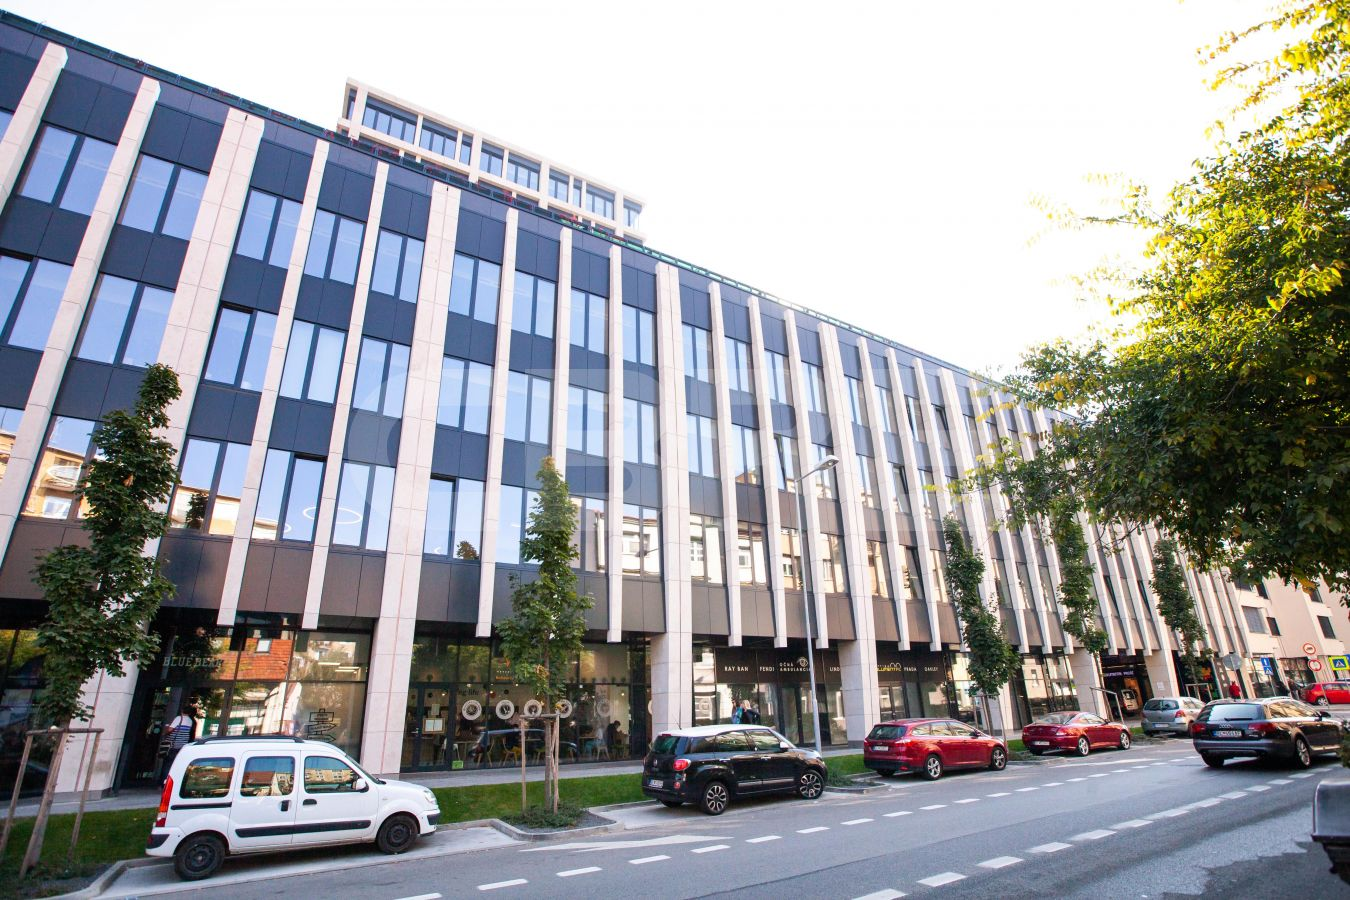 Blumental - Office Part - Phase I, Bratislava - Staré Mesto | Offices for rent by CBRE | 3